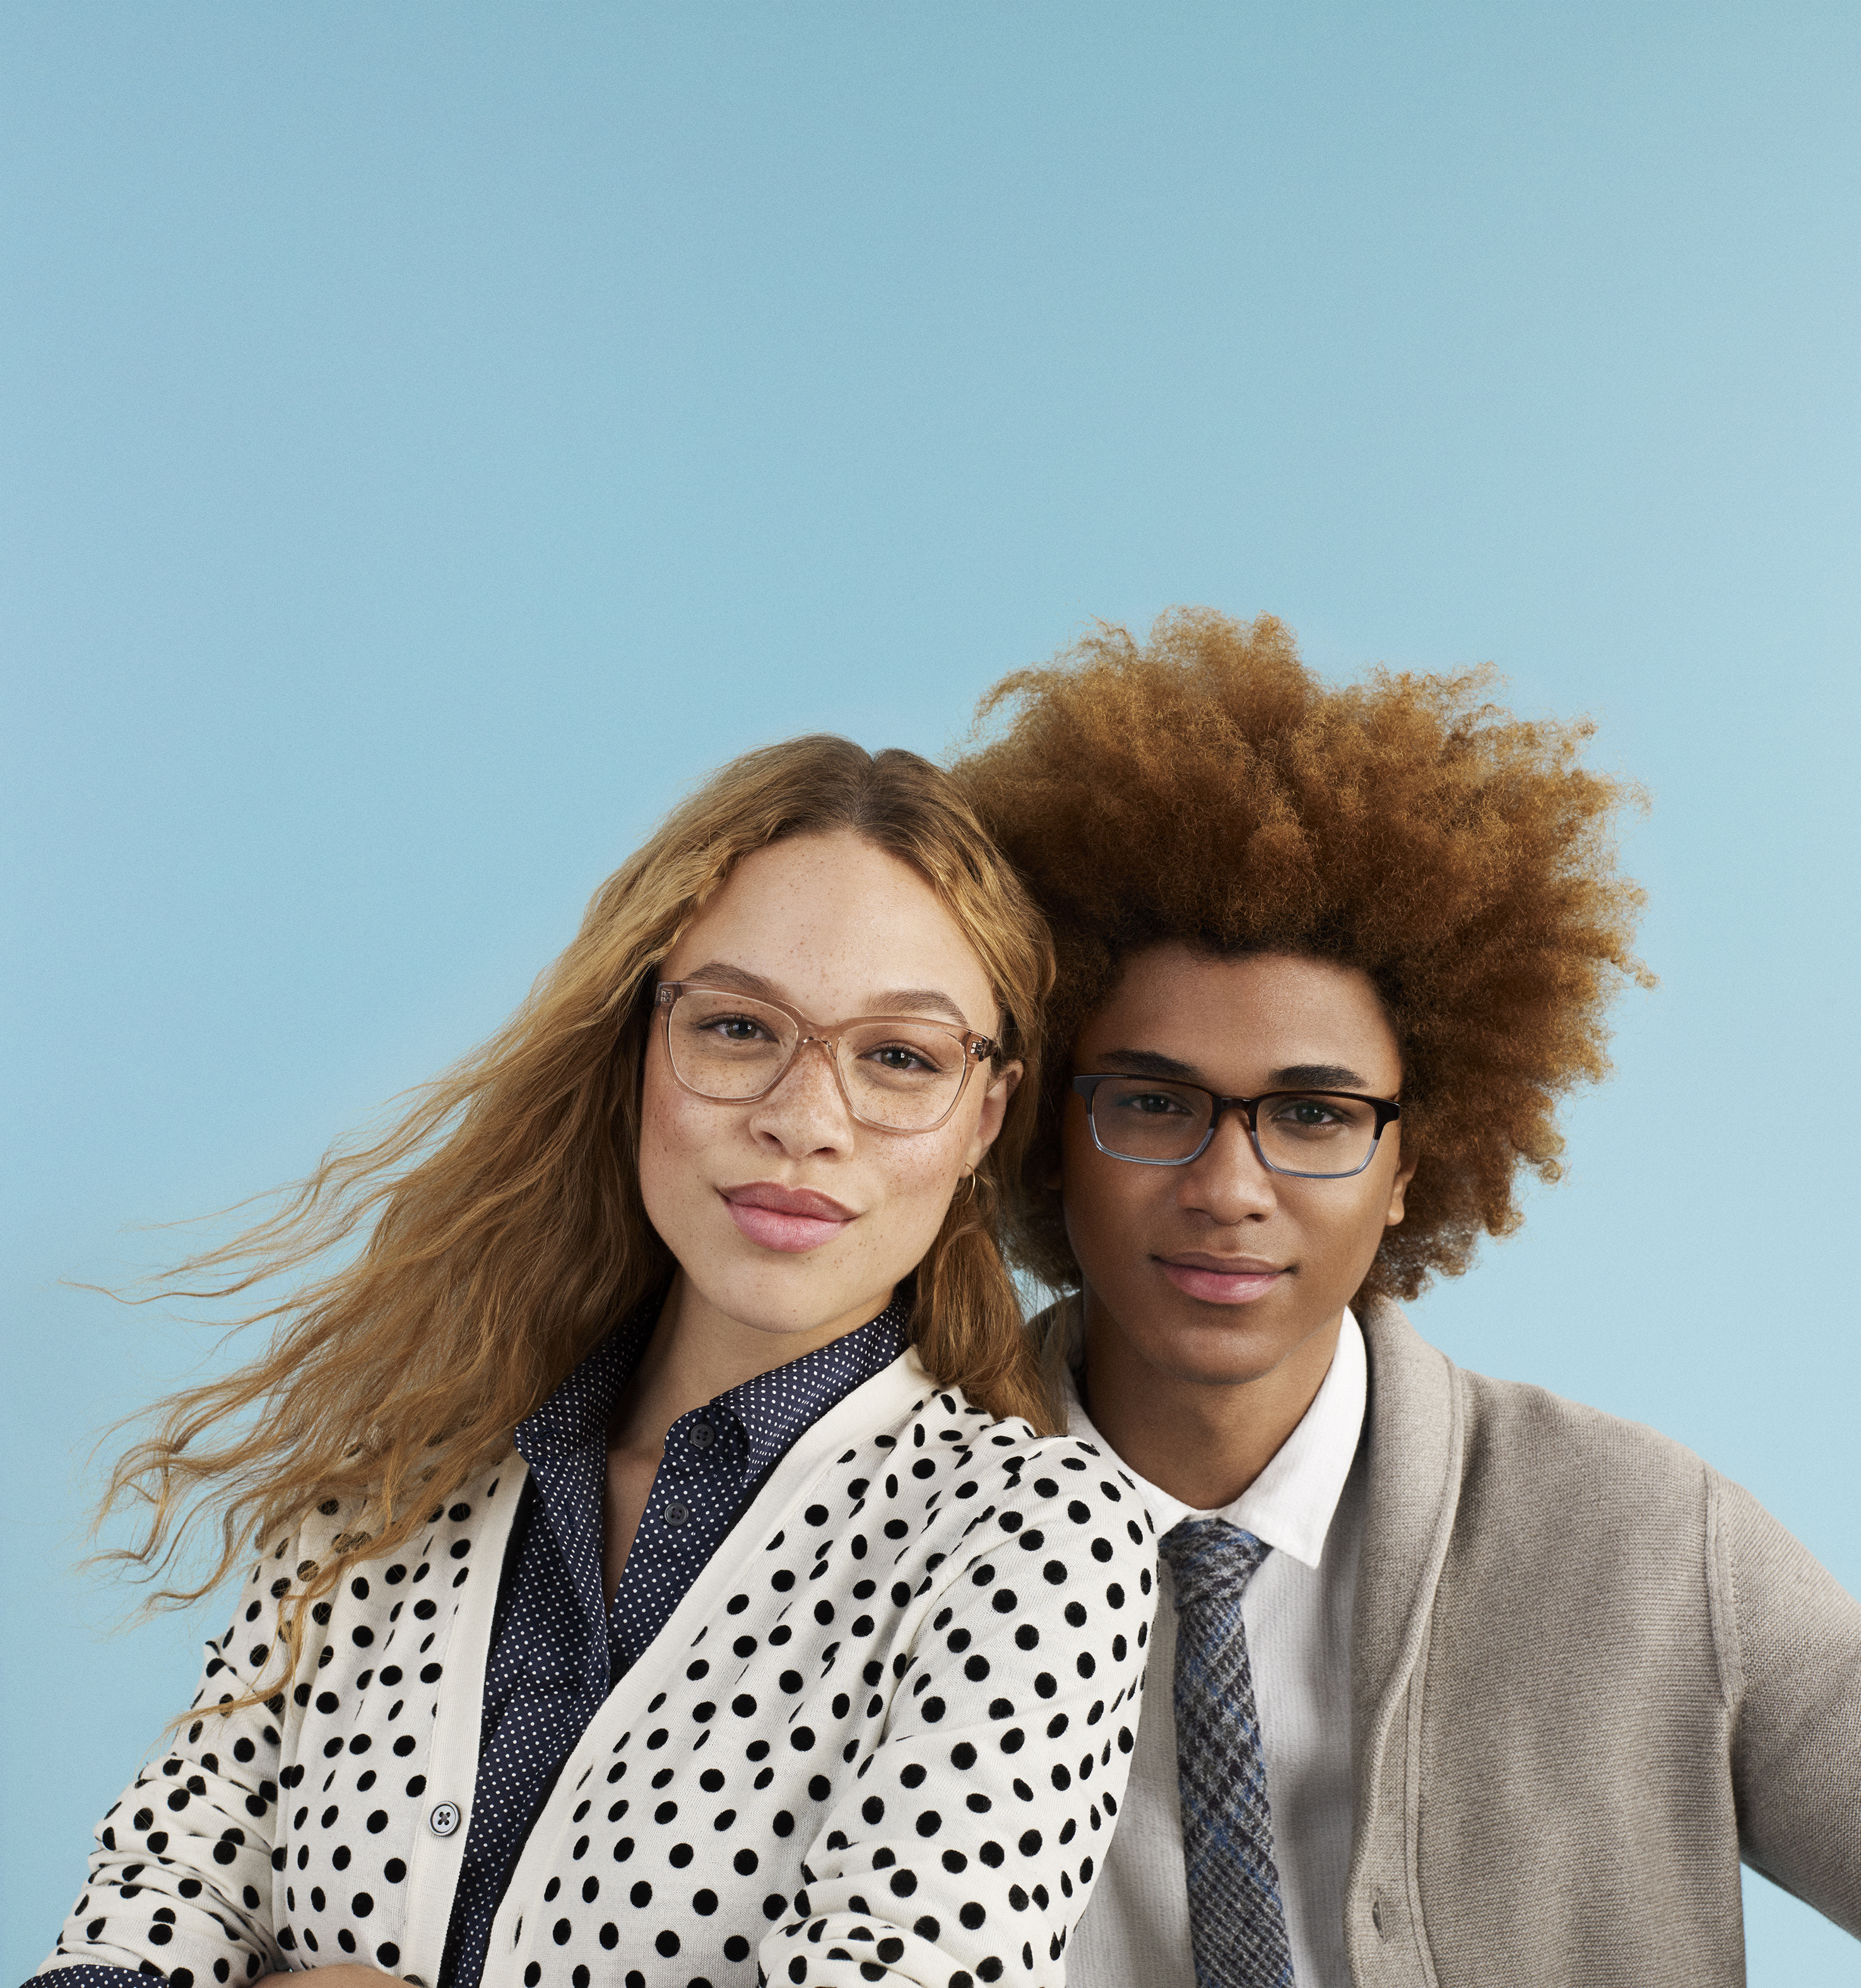 a23da7fa97 Affordable Designer Prescription Eyewear from Warby Parker Now Available to  People Enrolled in UnitedHealthcare Medicare Advantage Plans